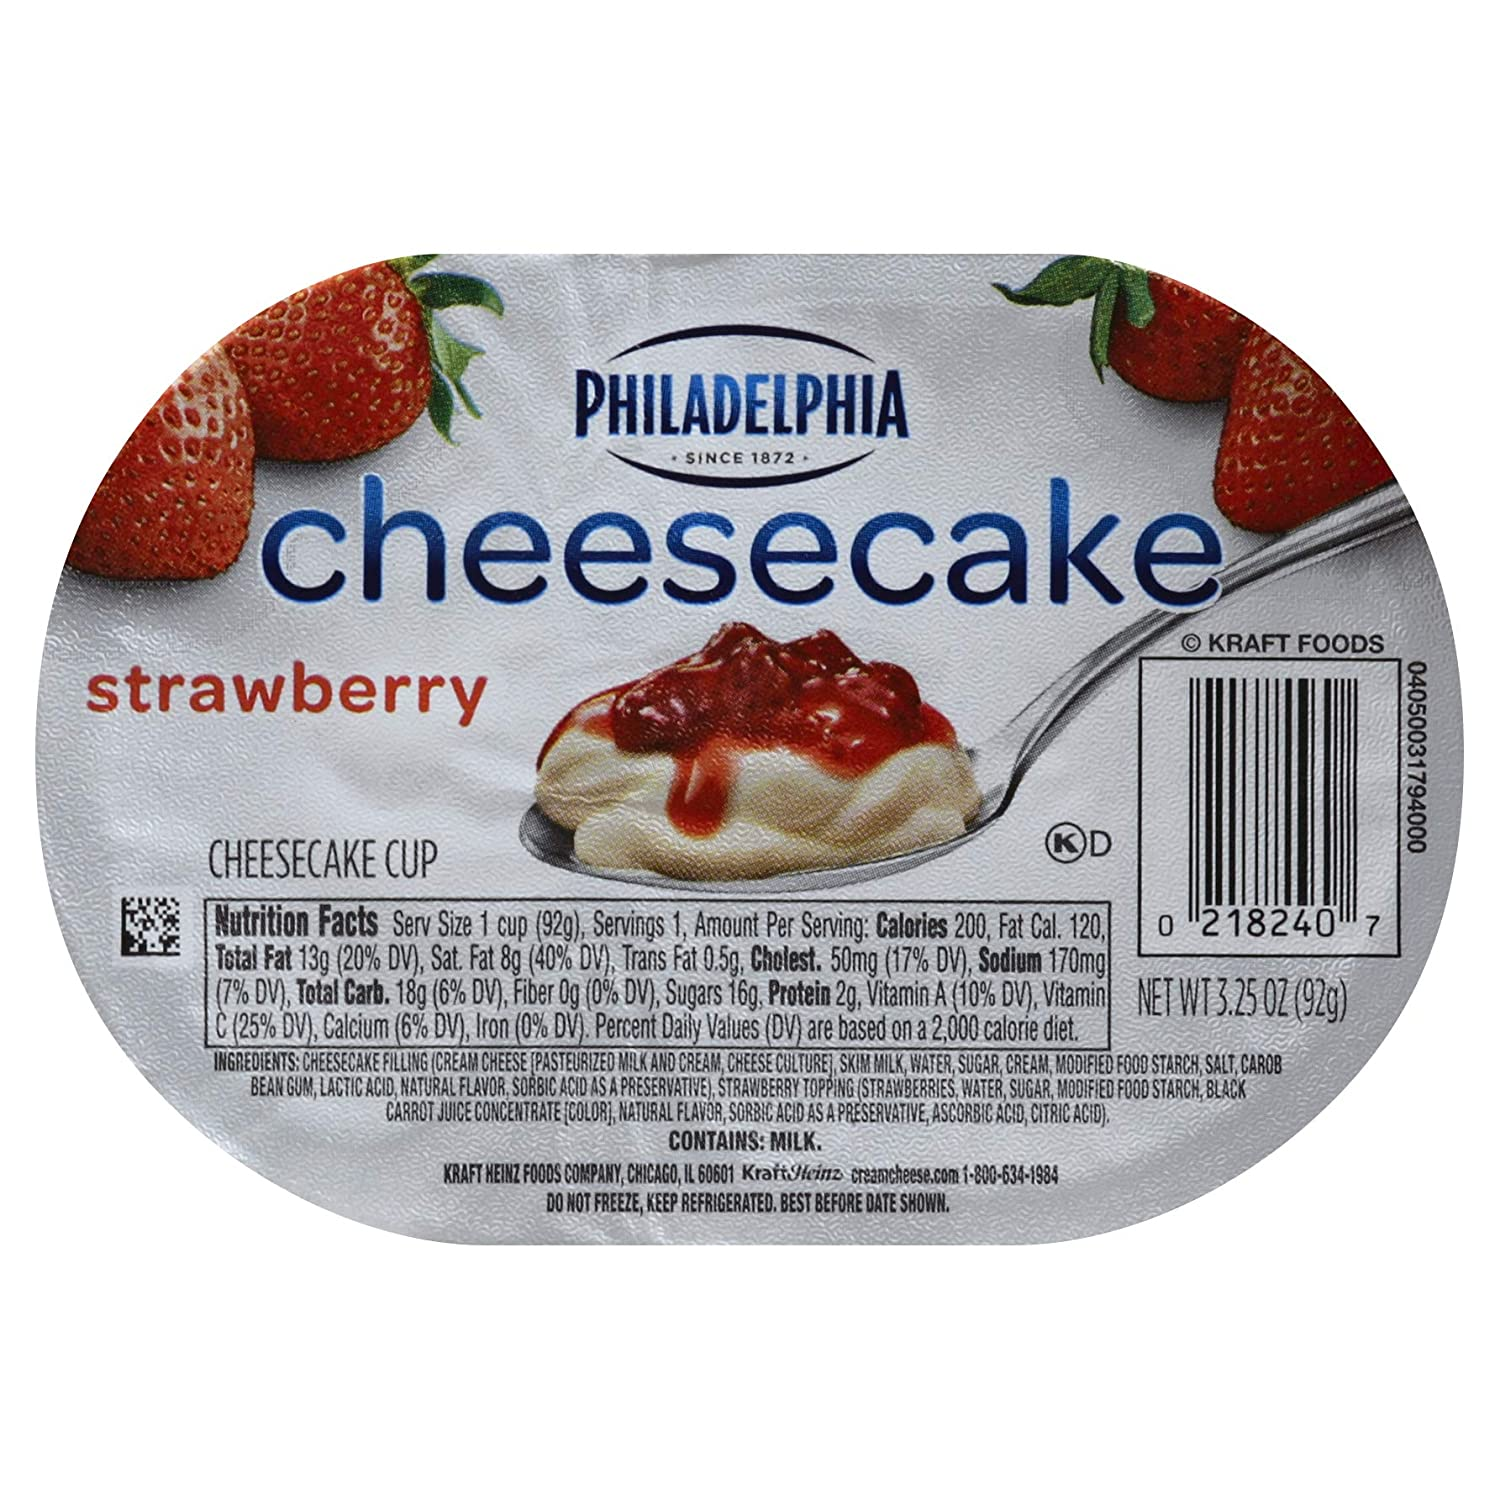 Philadelphia Ready Challenge the lowest price of Japan ☆ To Eat Virginia Beach Mall Strawberry ounce 3.25 Cheesecake Cups